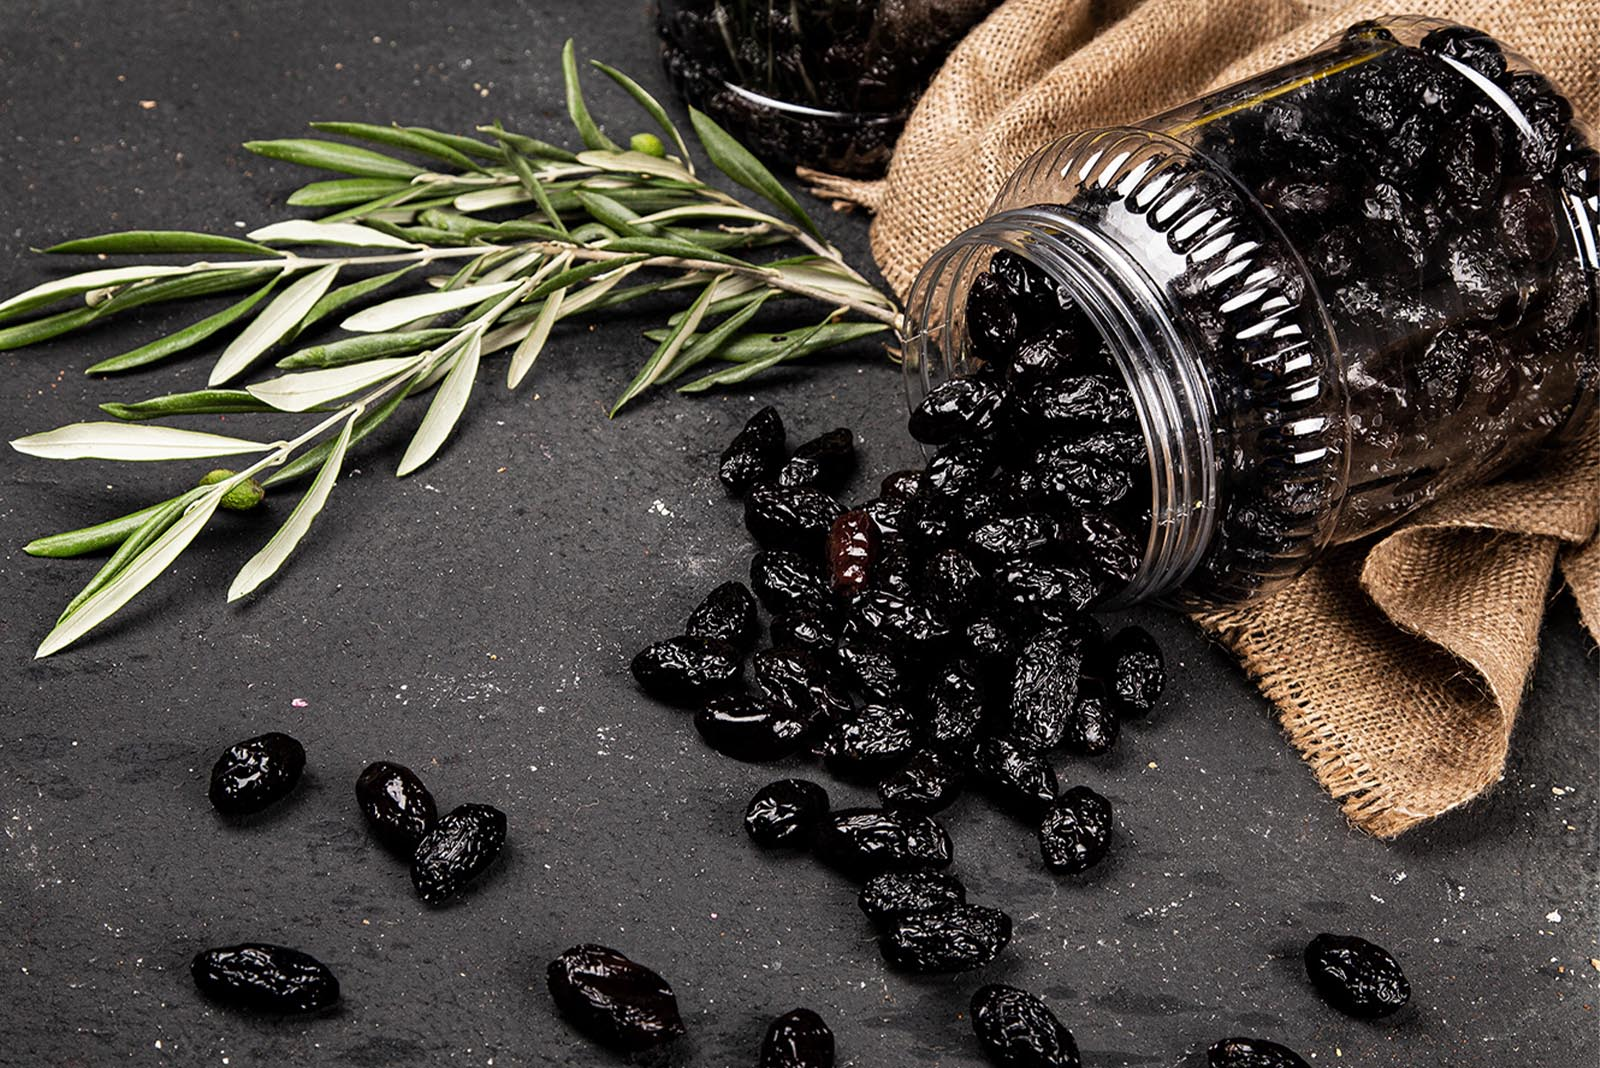 You are currently viewing Siyah Zeytin (1 kg) 28 TL